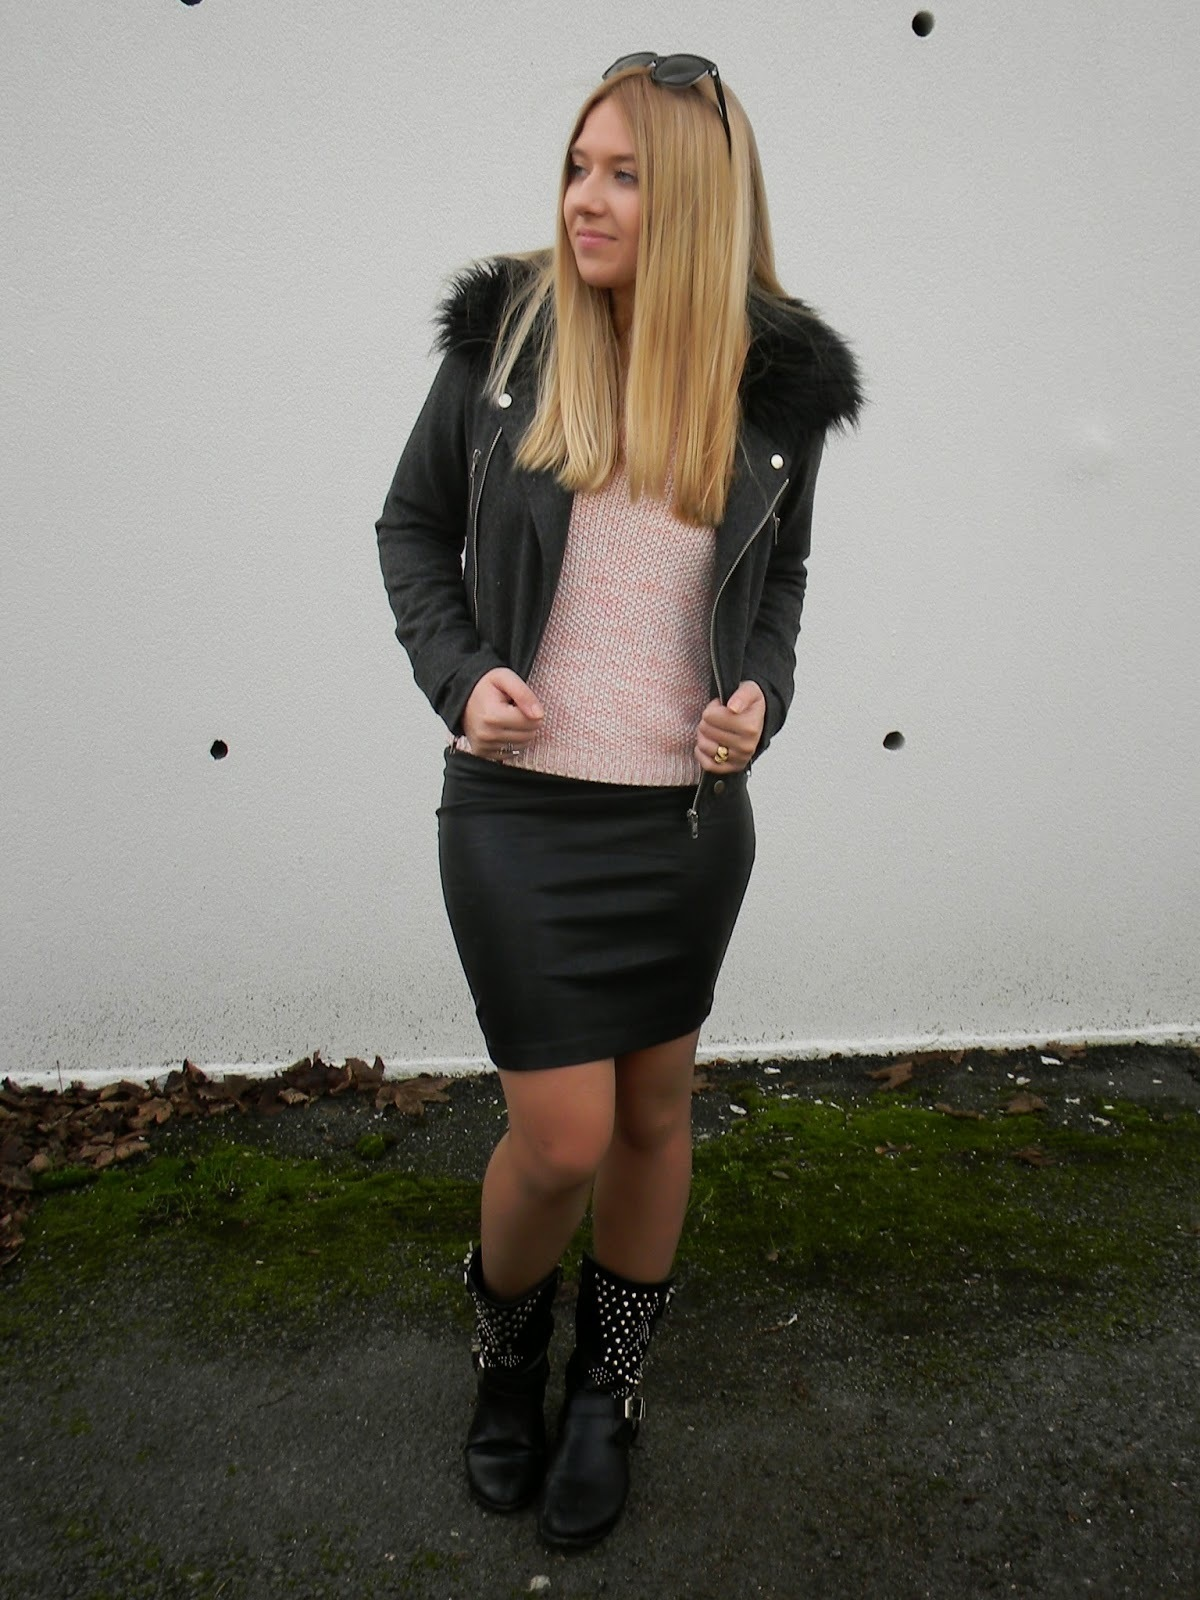 Black mini skirt and boots – Fashion clothes in USA photo blog